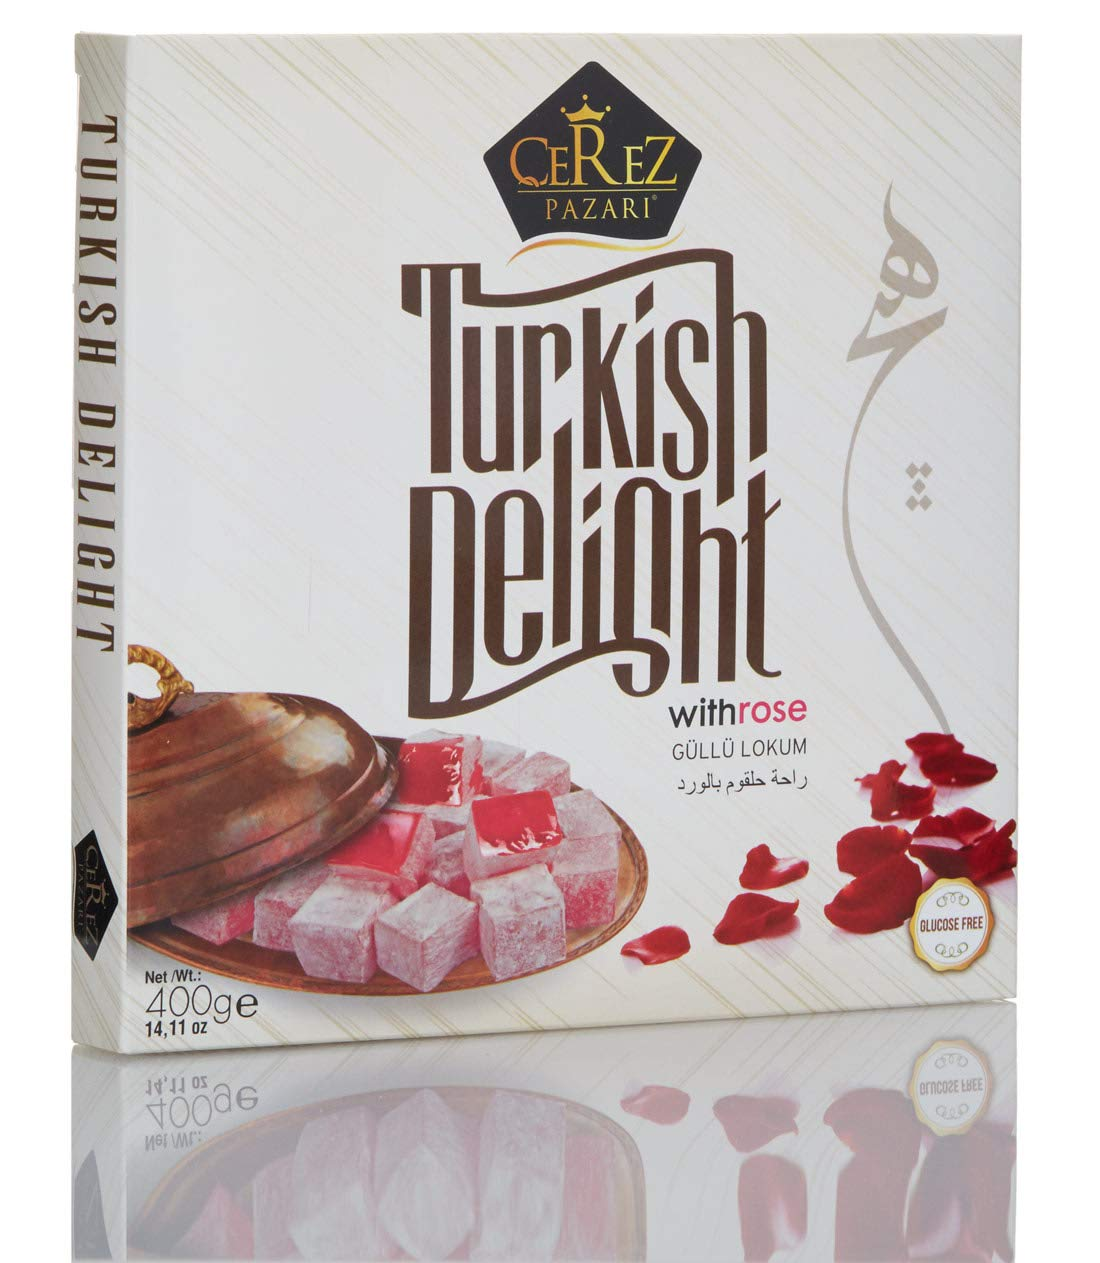 Cerez Pazari Turkish Delight with Rose Flavour 400 gr Gourmet Medium Size Snacks Gift Box | No Nuts Sweet Luxury Traditional Confectionery Vegan Soft Candy Dessert Glucose Free Lokum Approx.40 Pcs